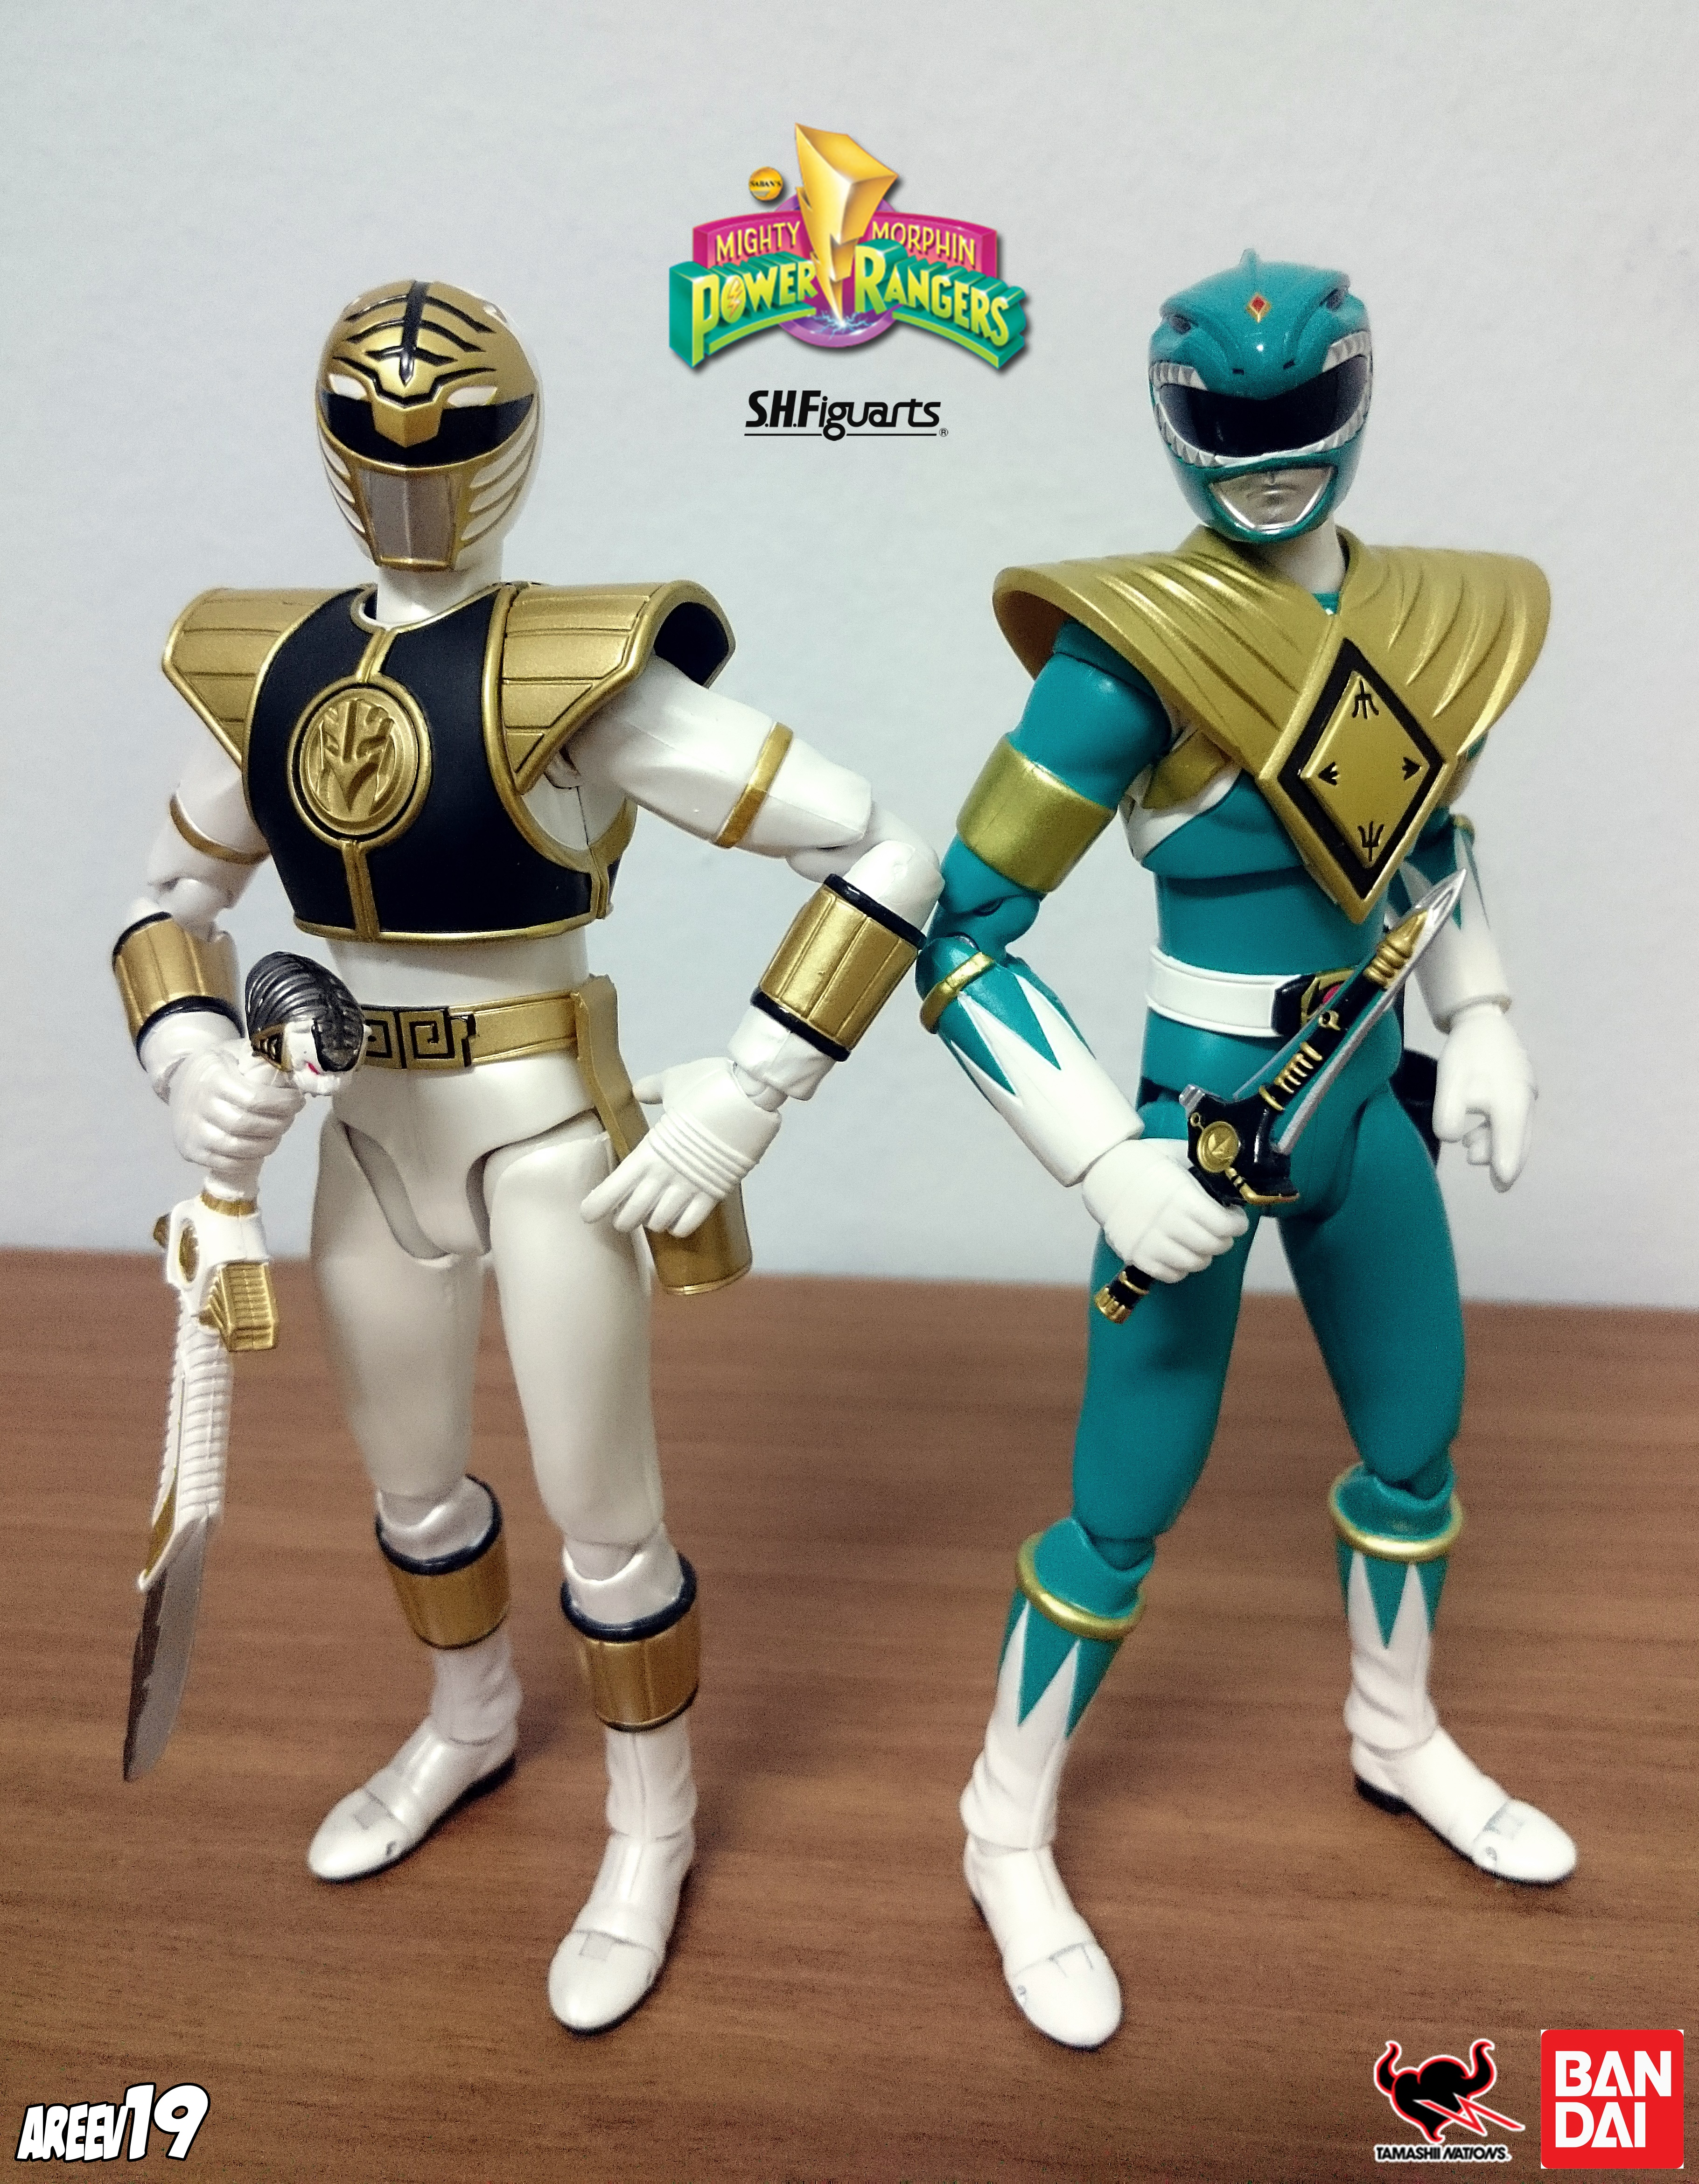 SHFiguarts White Ranger x Green Ranger by areev19